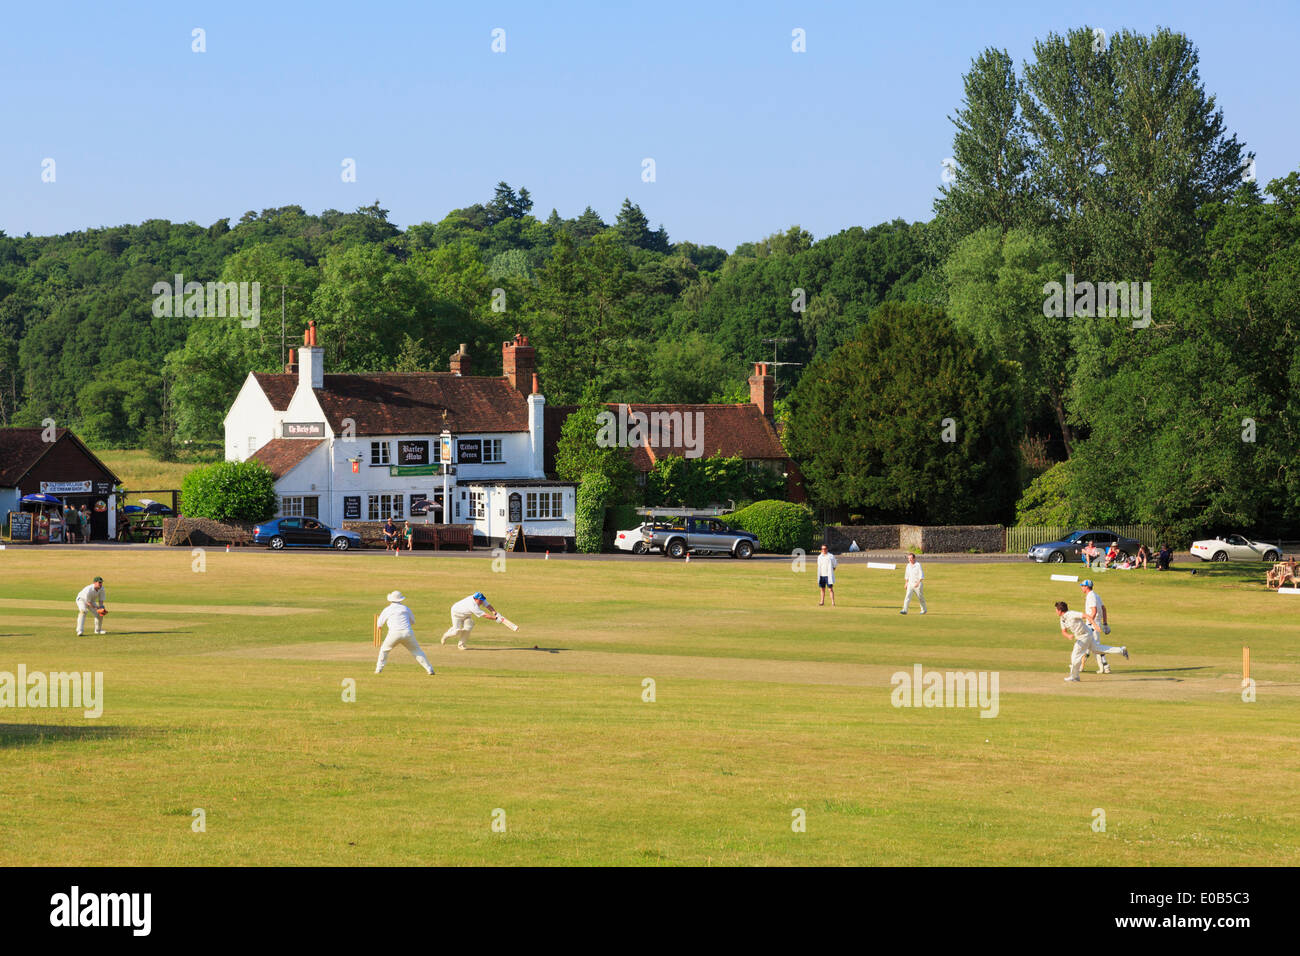 Local teams playing a cricket match on village green in front of Barley Mow pub on a summer's evening. Tilford Surrey Stock Photo